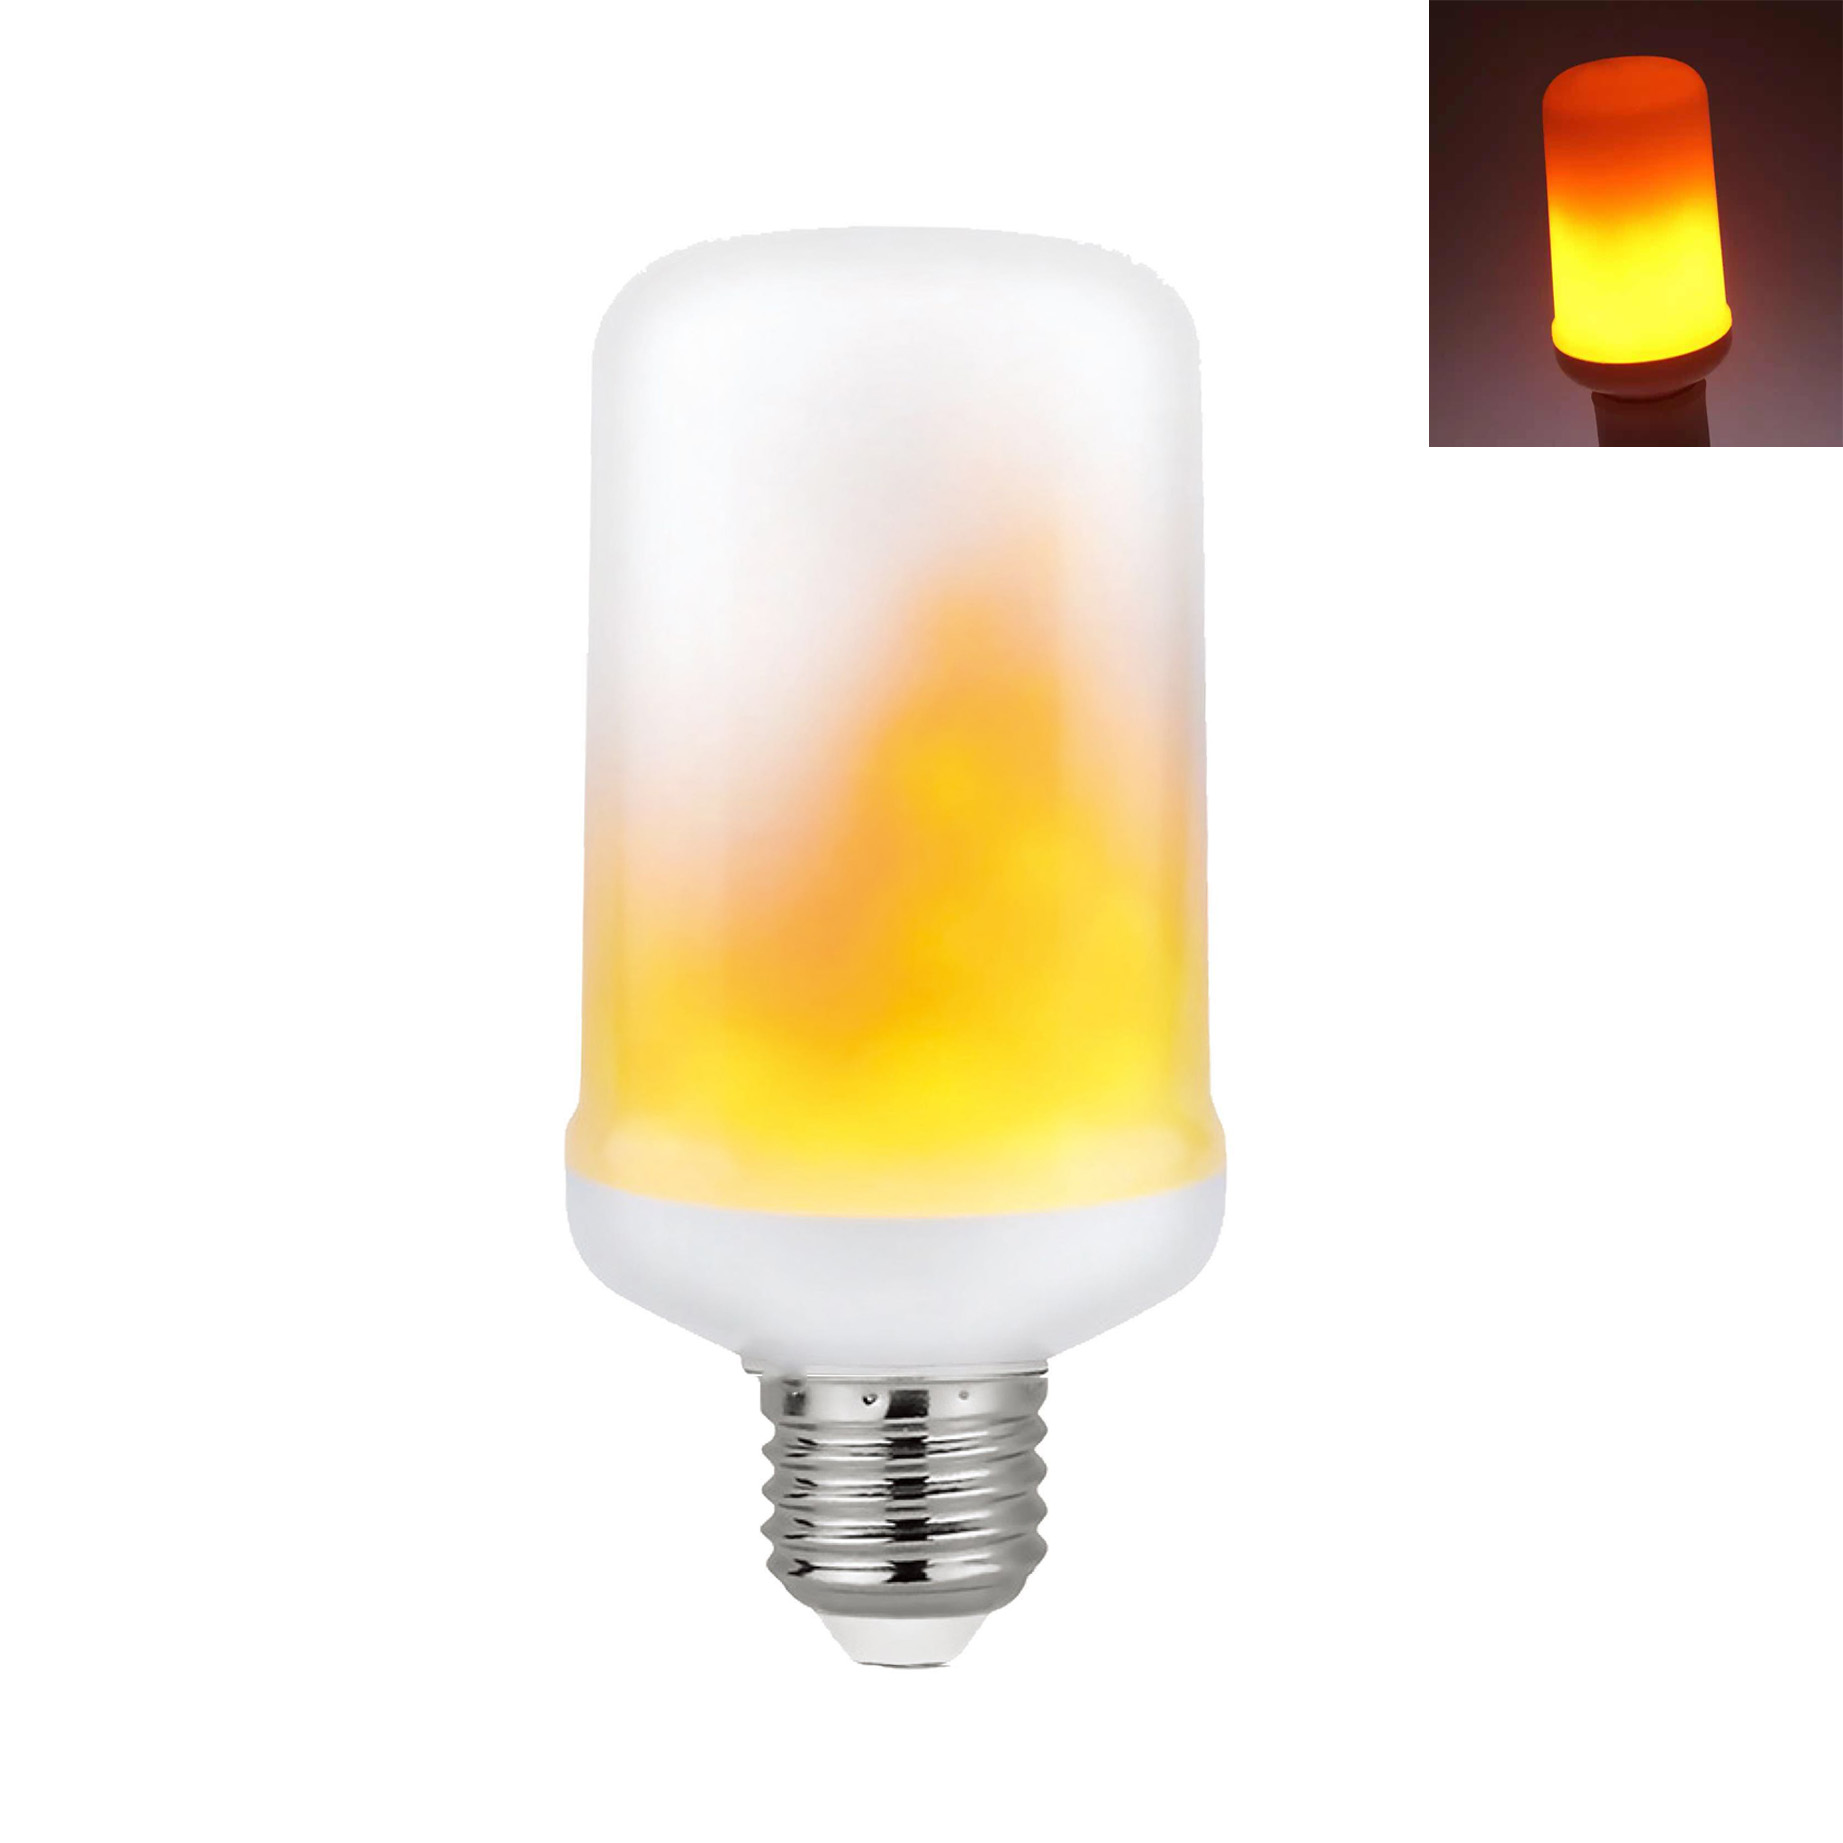 LED bulb E27 5w flame-effect for decoration